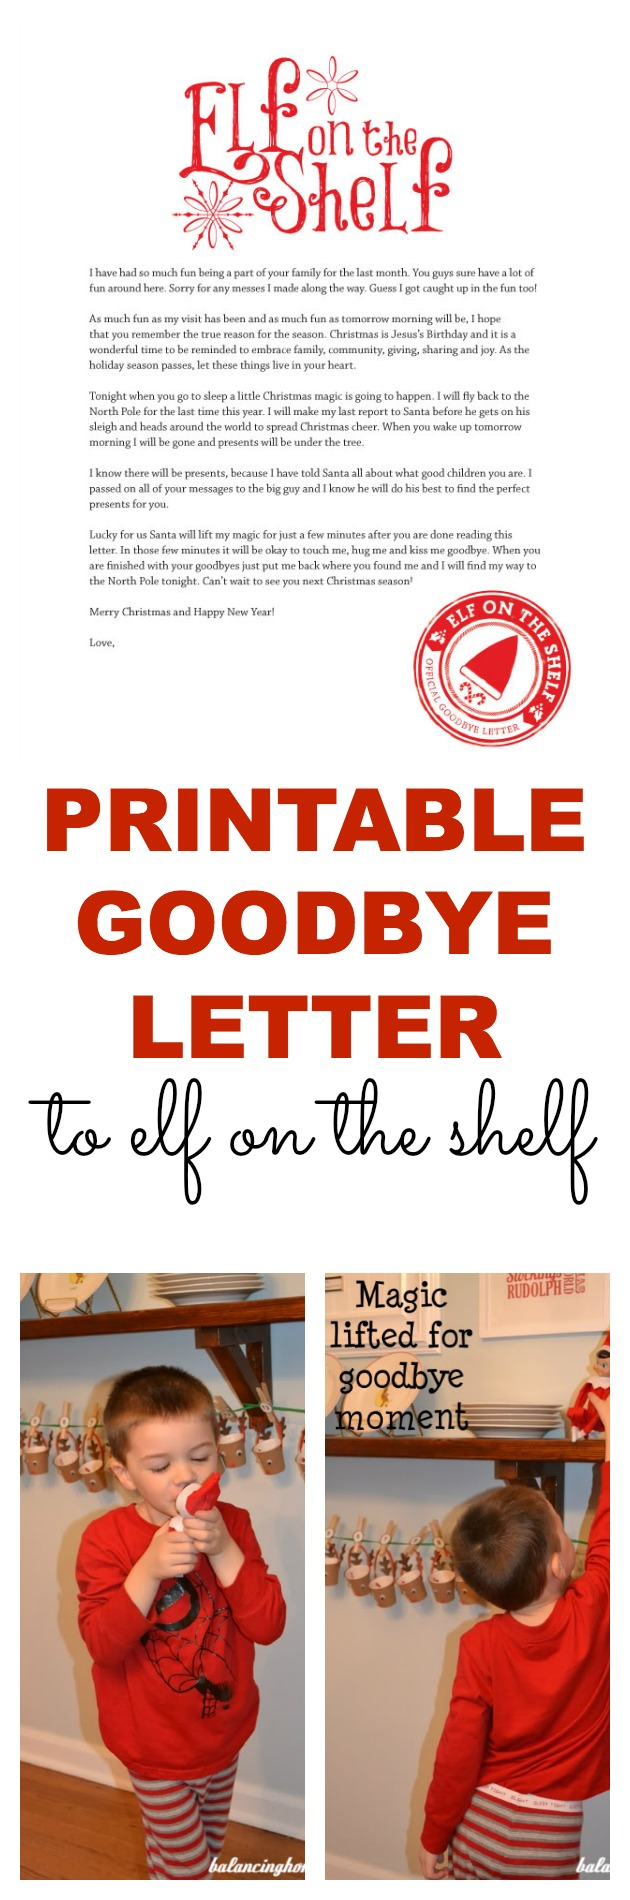 printable goodbye letter for Elf on the Shelf. Perfect way to wrap ...